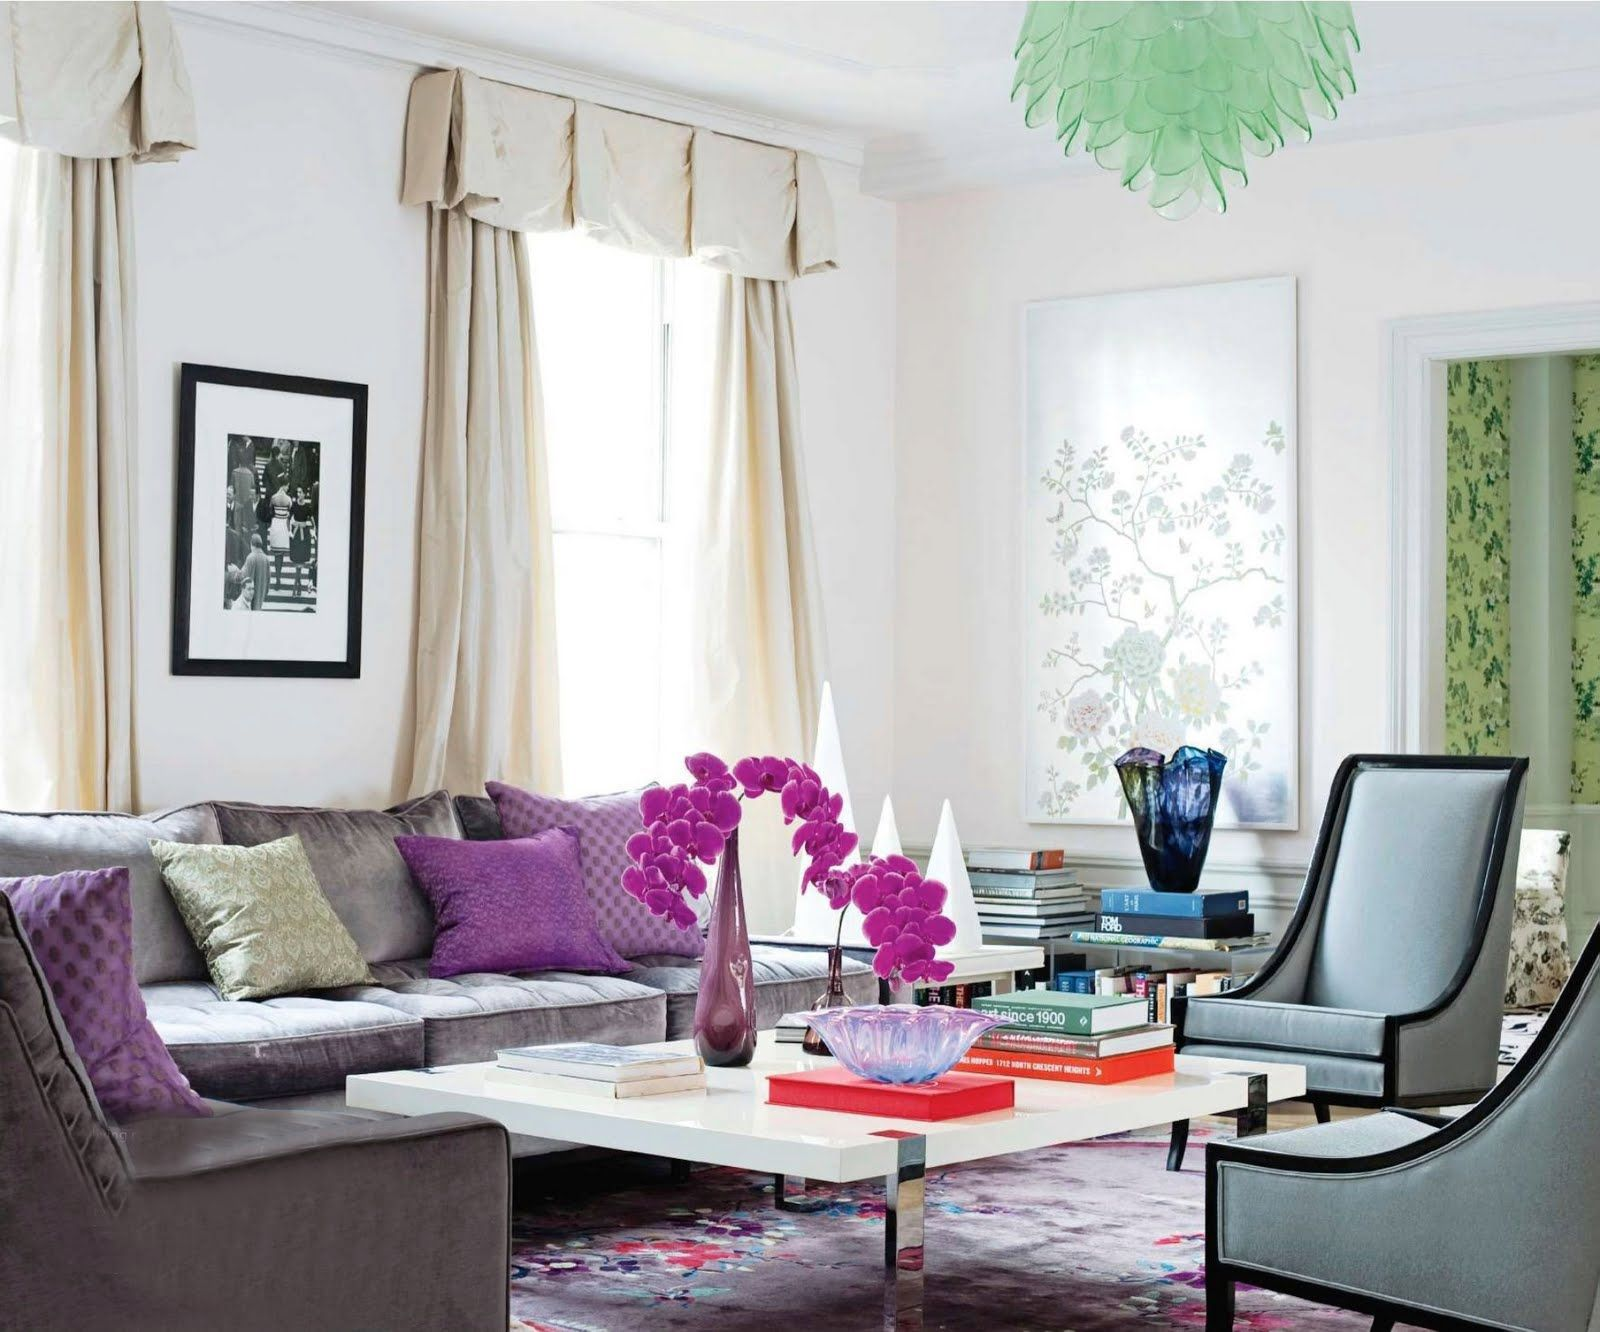 Catchy Living Rooms Designs With Purple Catchy Living Rooms Catchy Living Rooms Designs With Purple Catchy Living Rooms Designs With Purple12